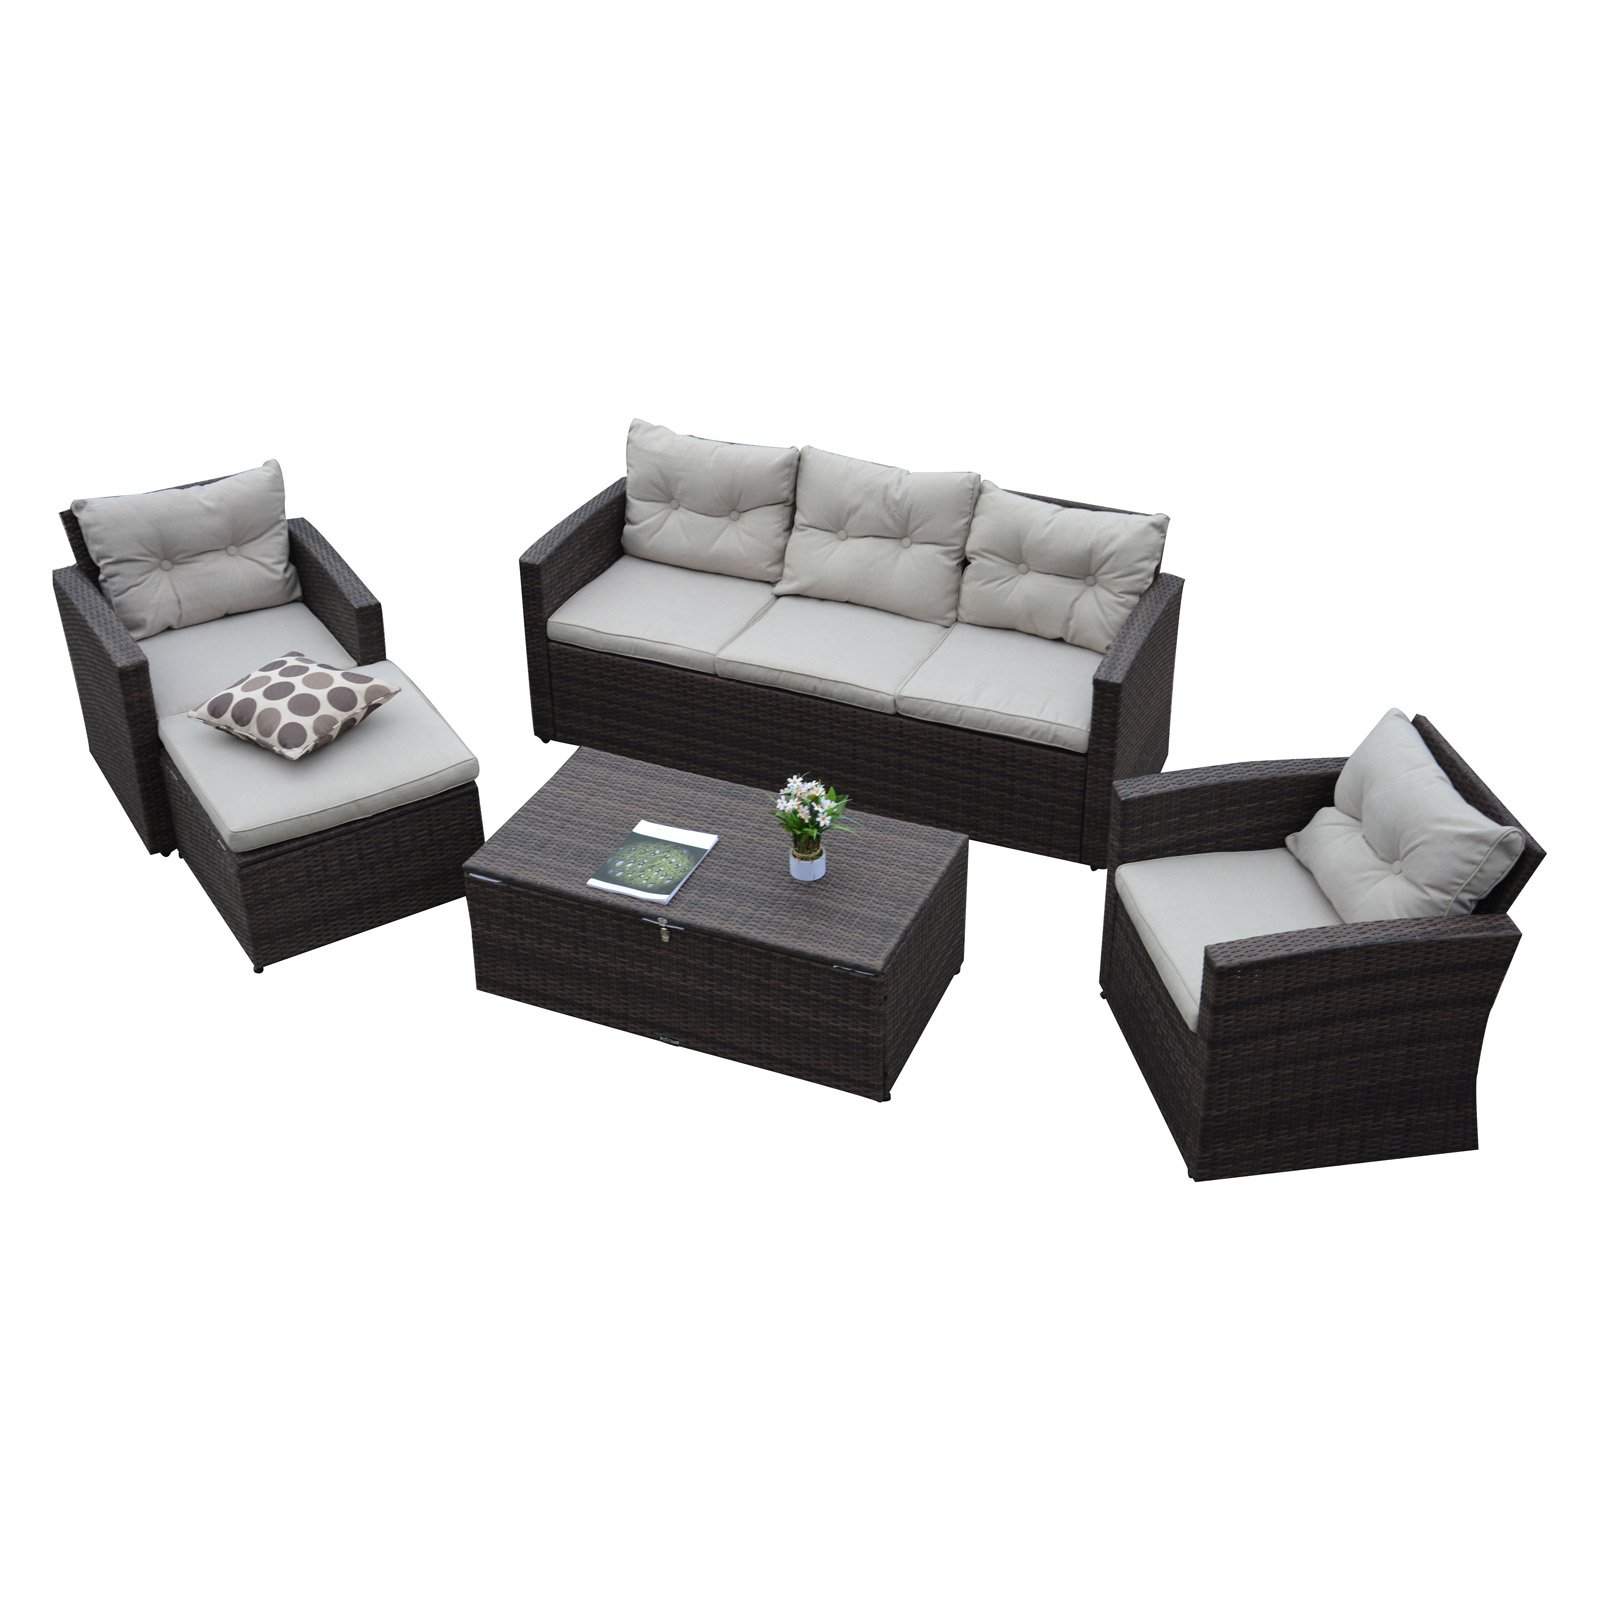 Thy-Hom Rio Wicker All-Weather 5 Piece Patio Conversation Set with Storage and Ottoman by The-Hom